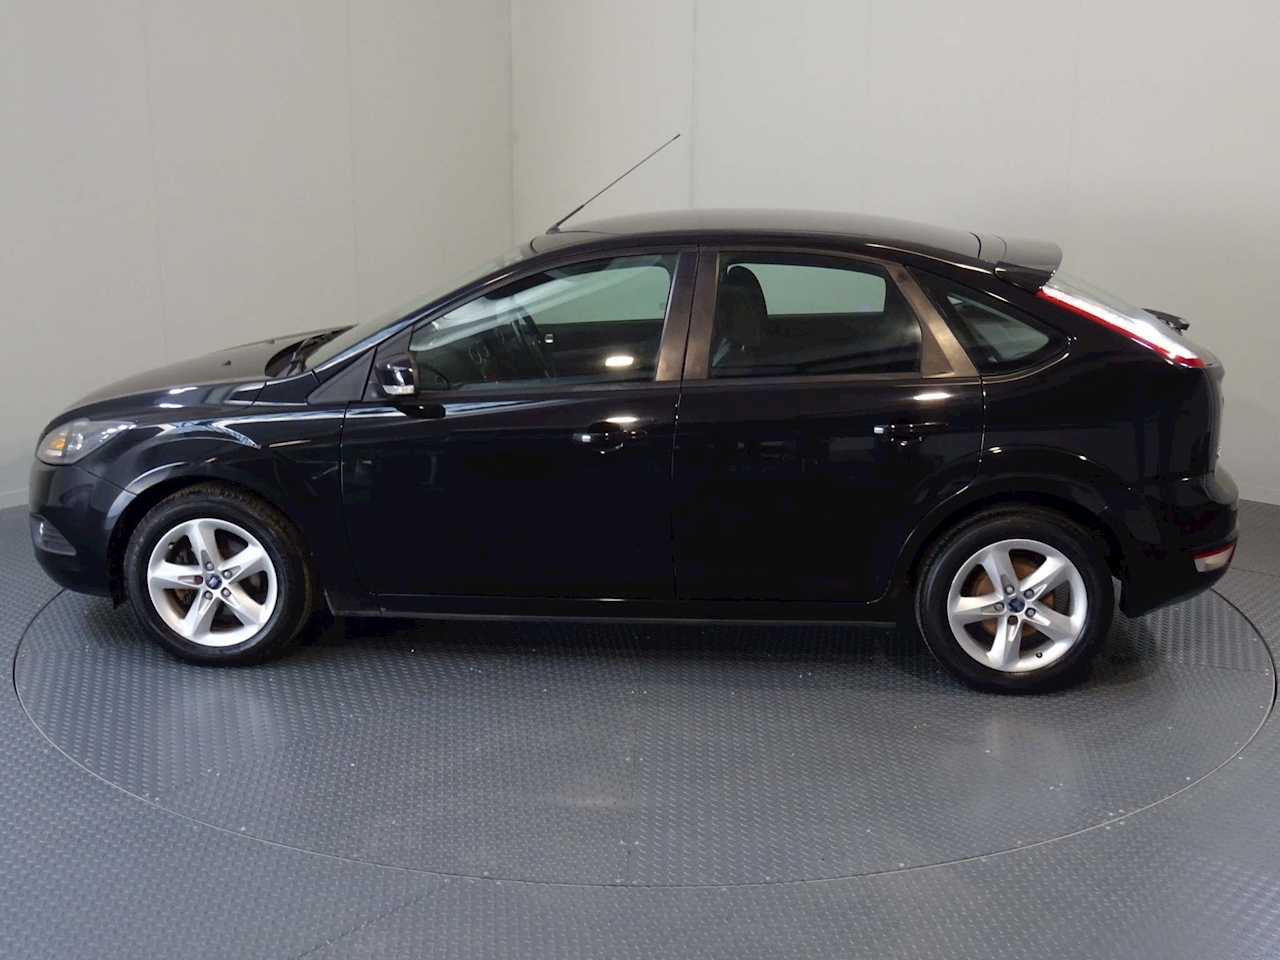 Ford Focus Zetec Hatchback 1.8 Manual Petrol